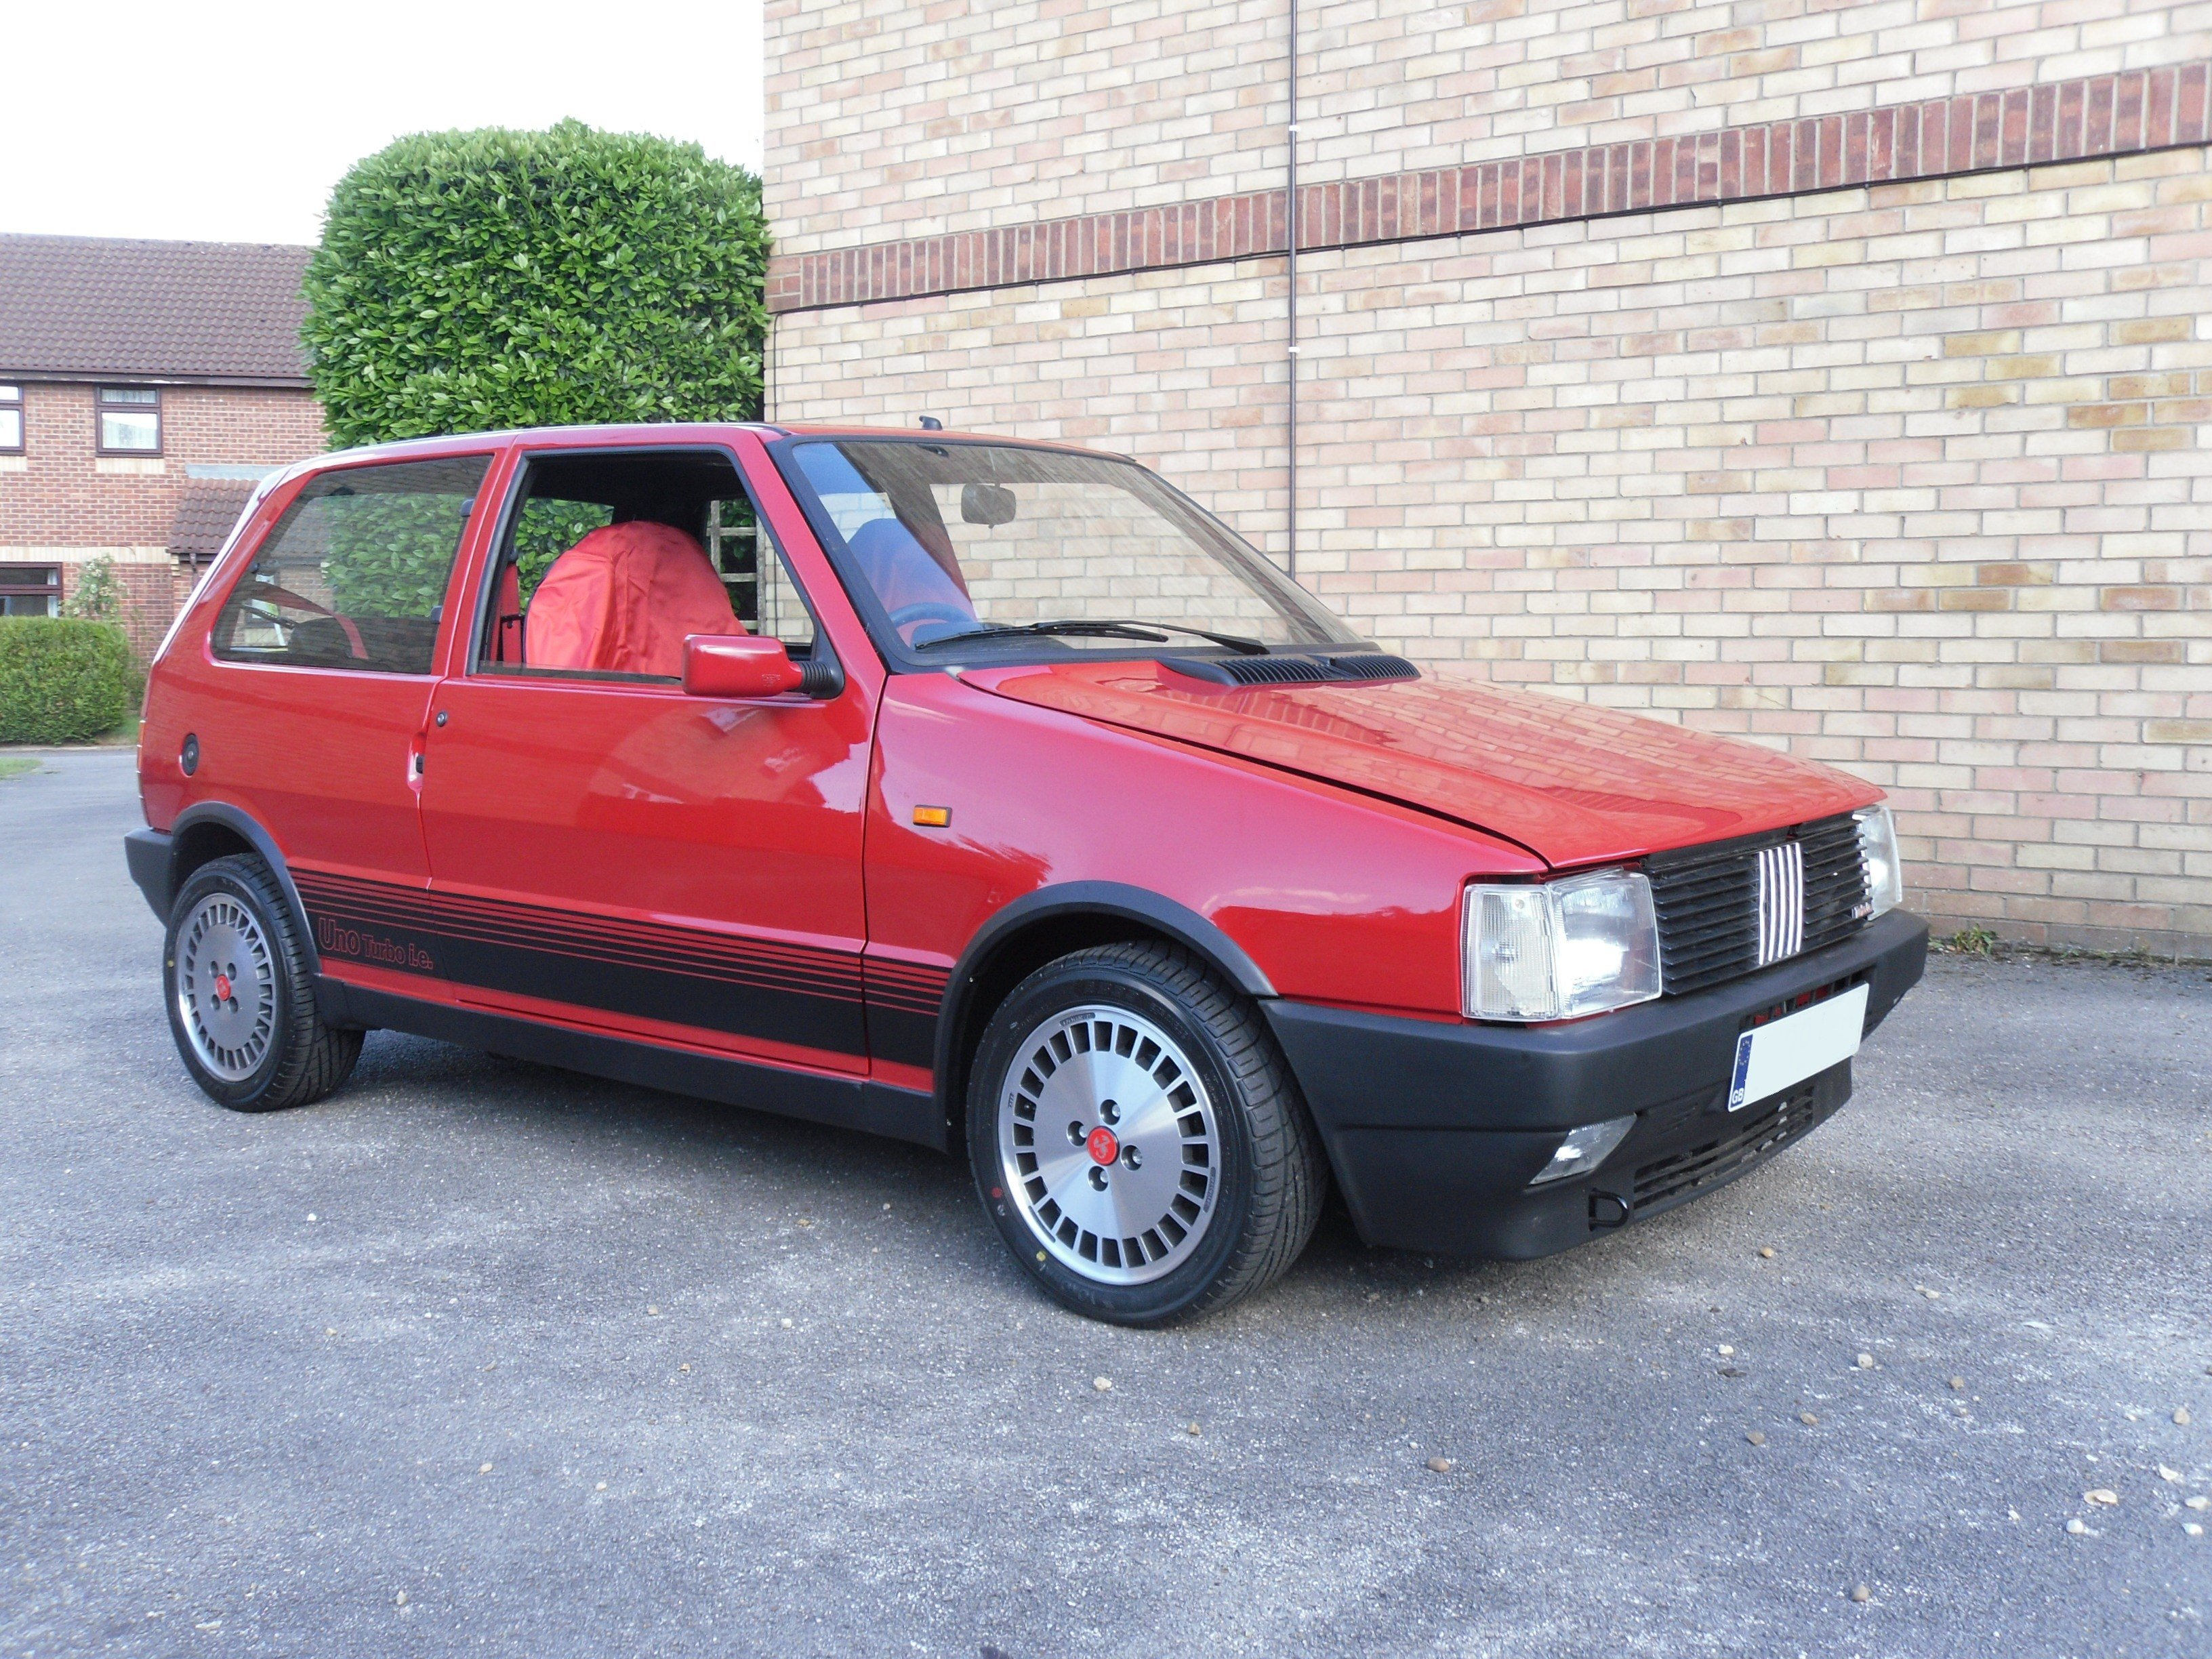 New Fiat Uno Review Ratings Design Features Performance On This Month